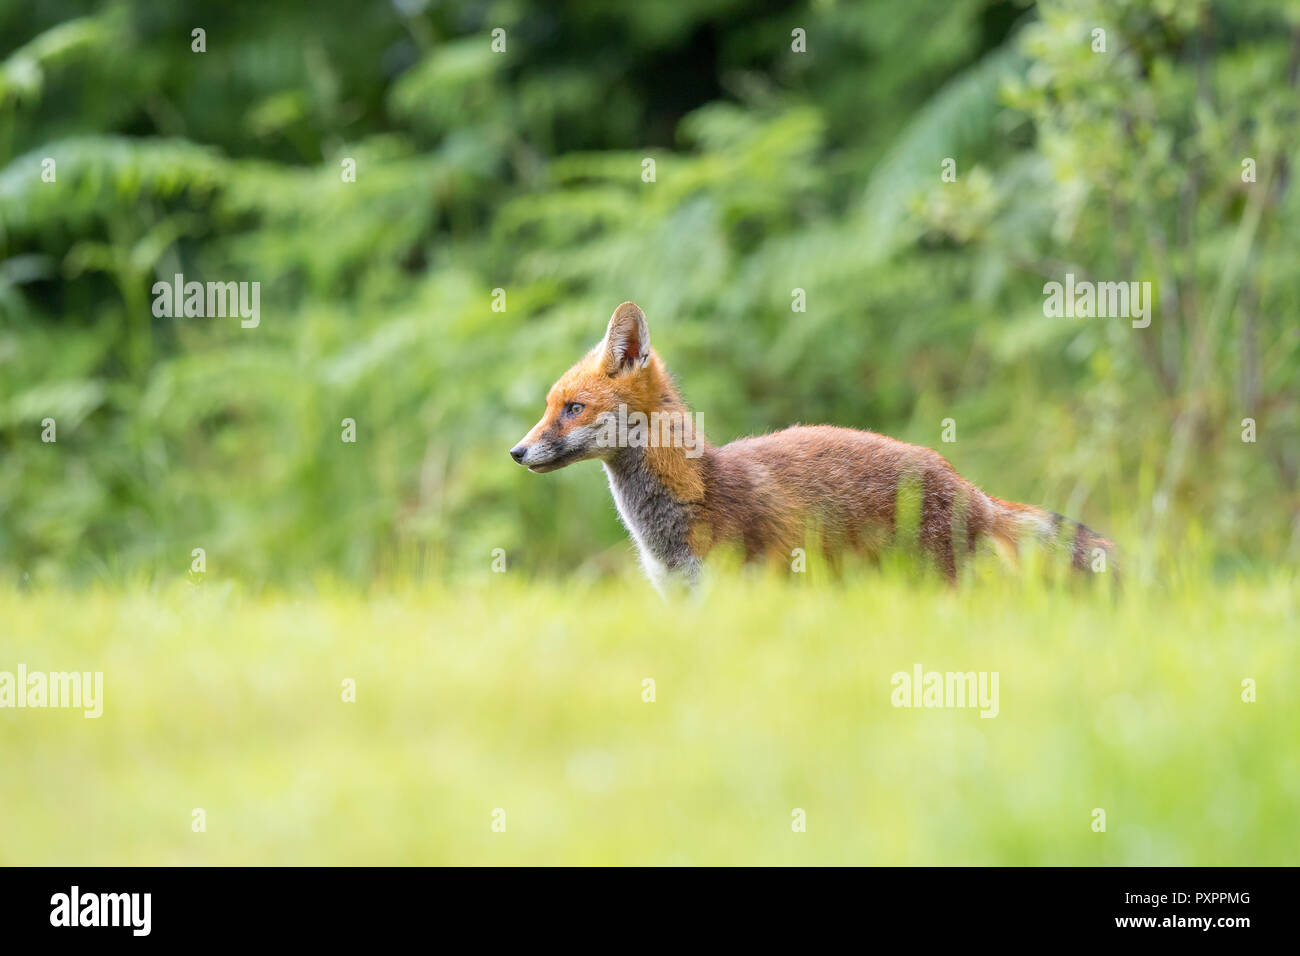 Detailed, close-up side view of young British red fox (Vulpes vulpes) in the wild, standing alone in long grass, with natural UK woodland background. Stock Photo